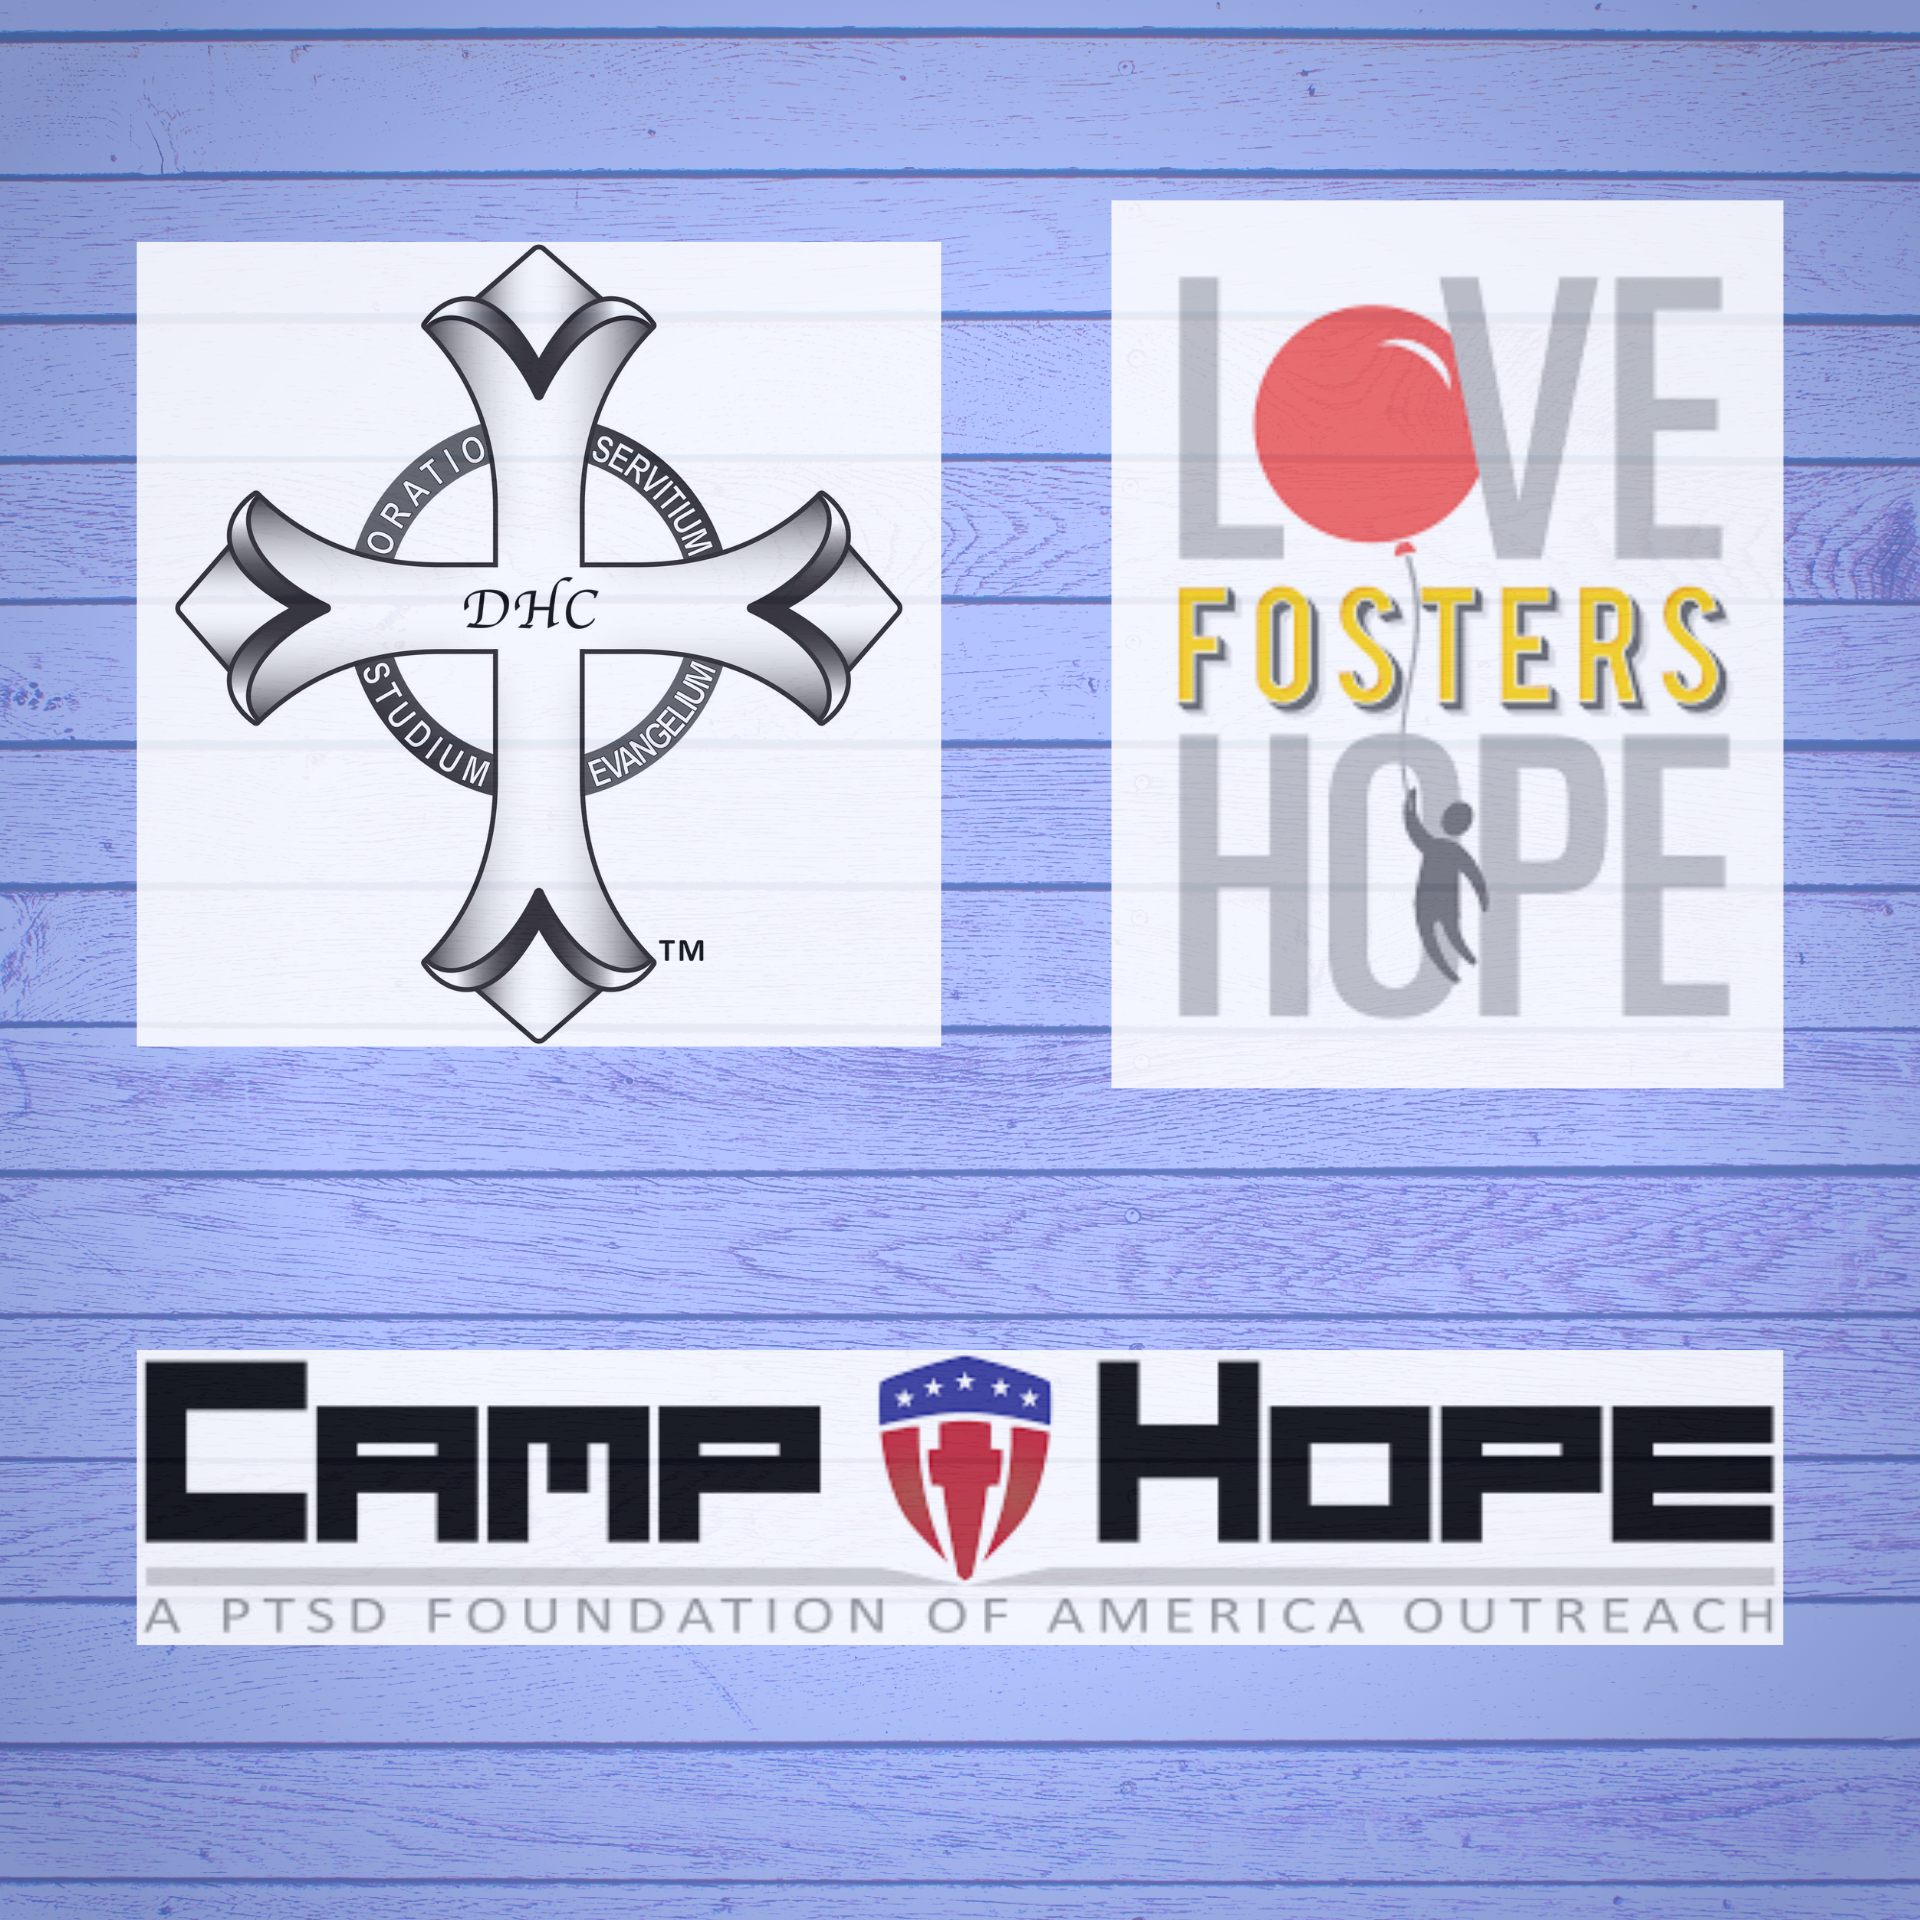 dhc_lfh_camp hope.png